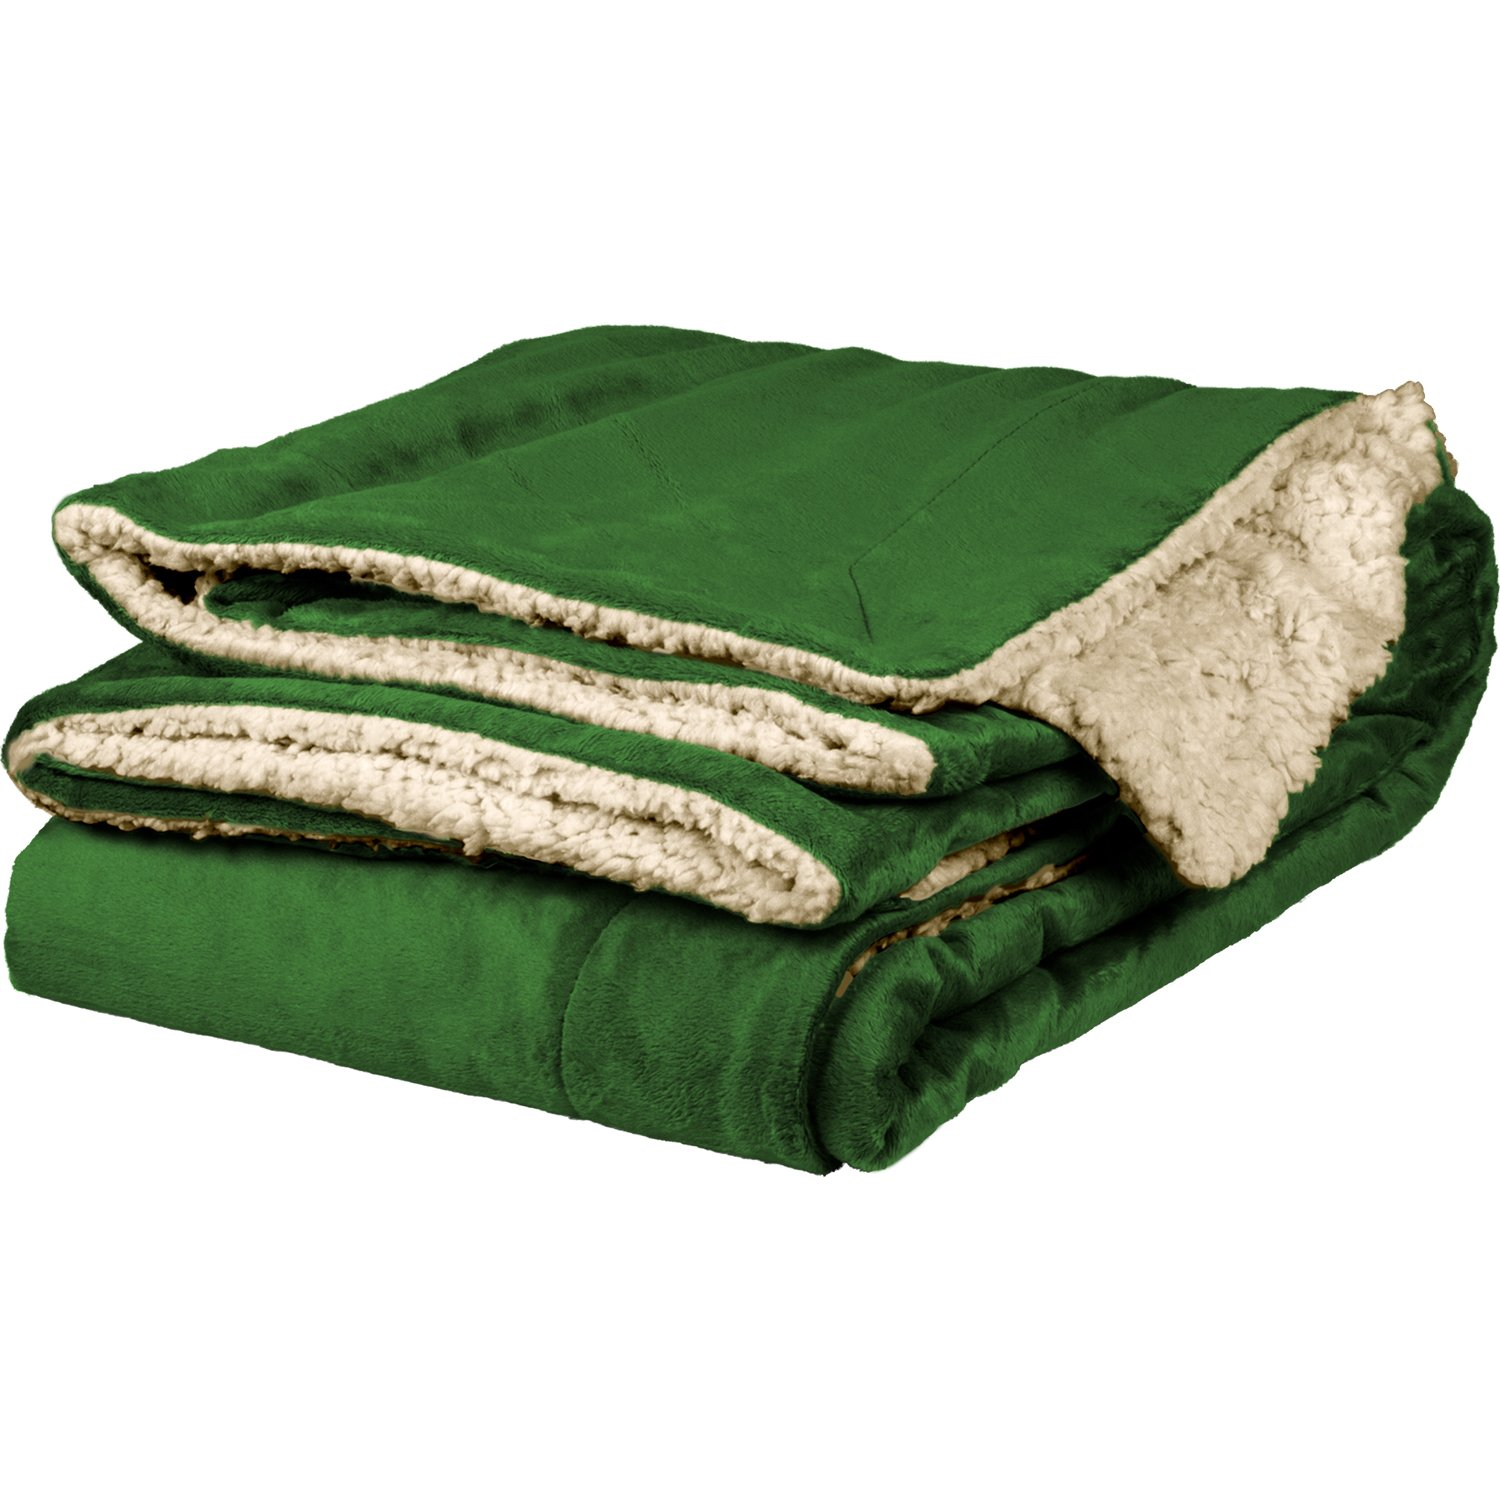 towelsoft Micro Mink Sherpa Throw、50